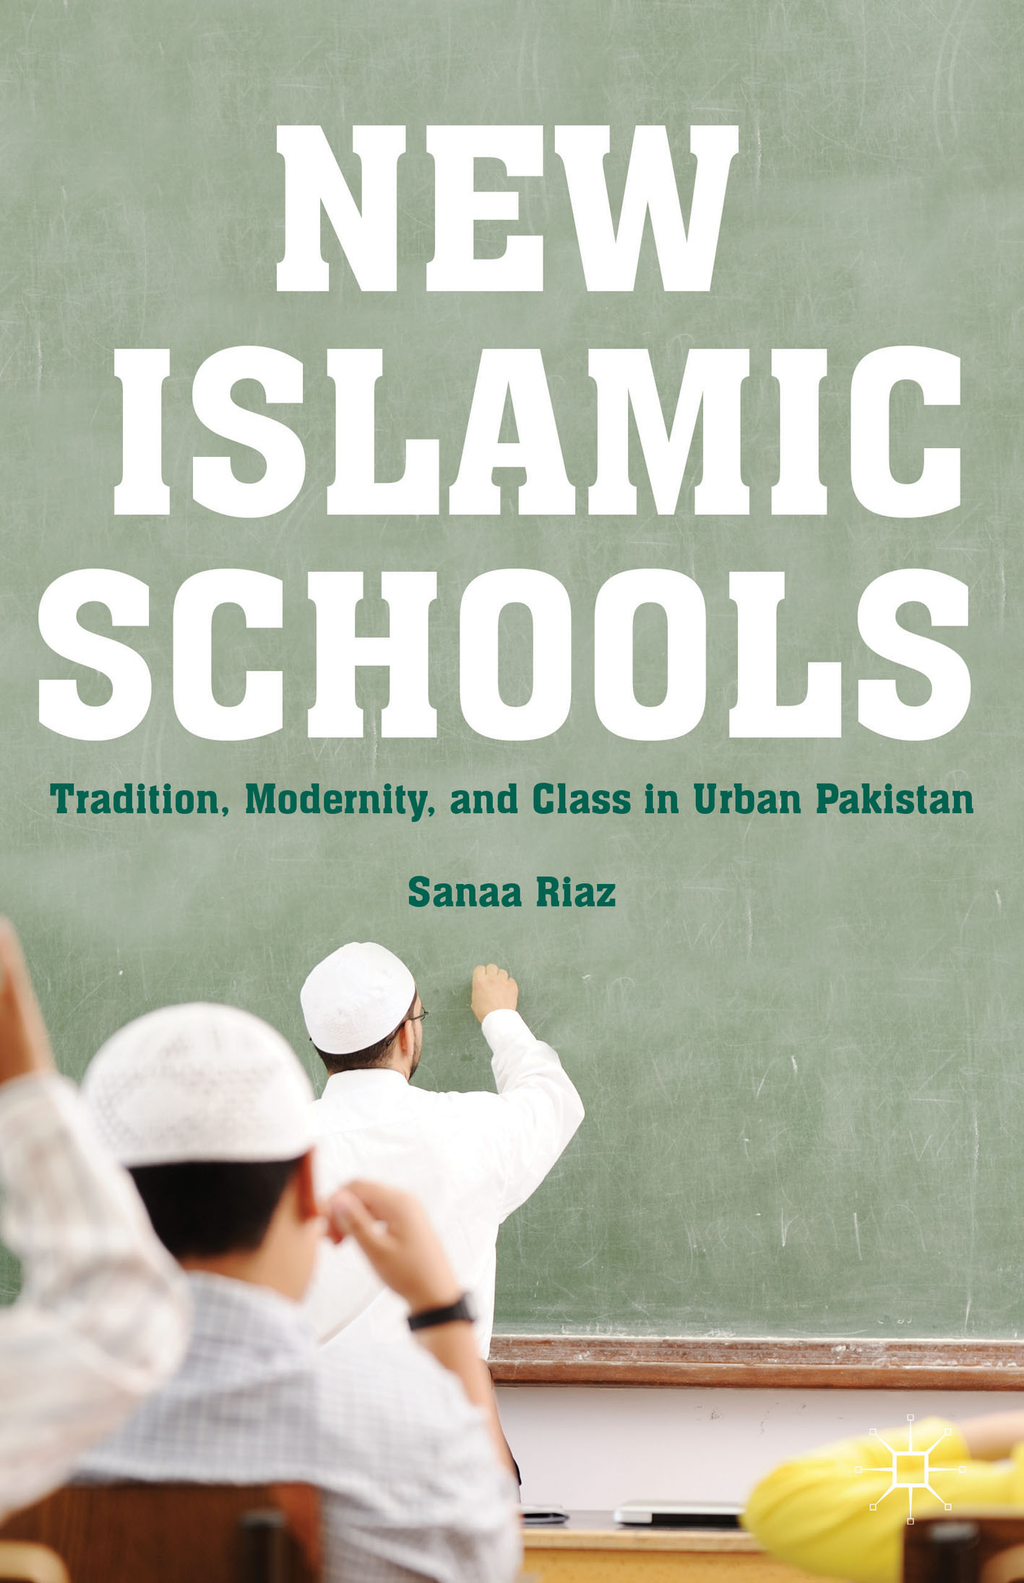 New Islamic Schools Tradition,  Modernity,  and Class in Urban Pakistan